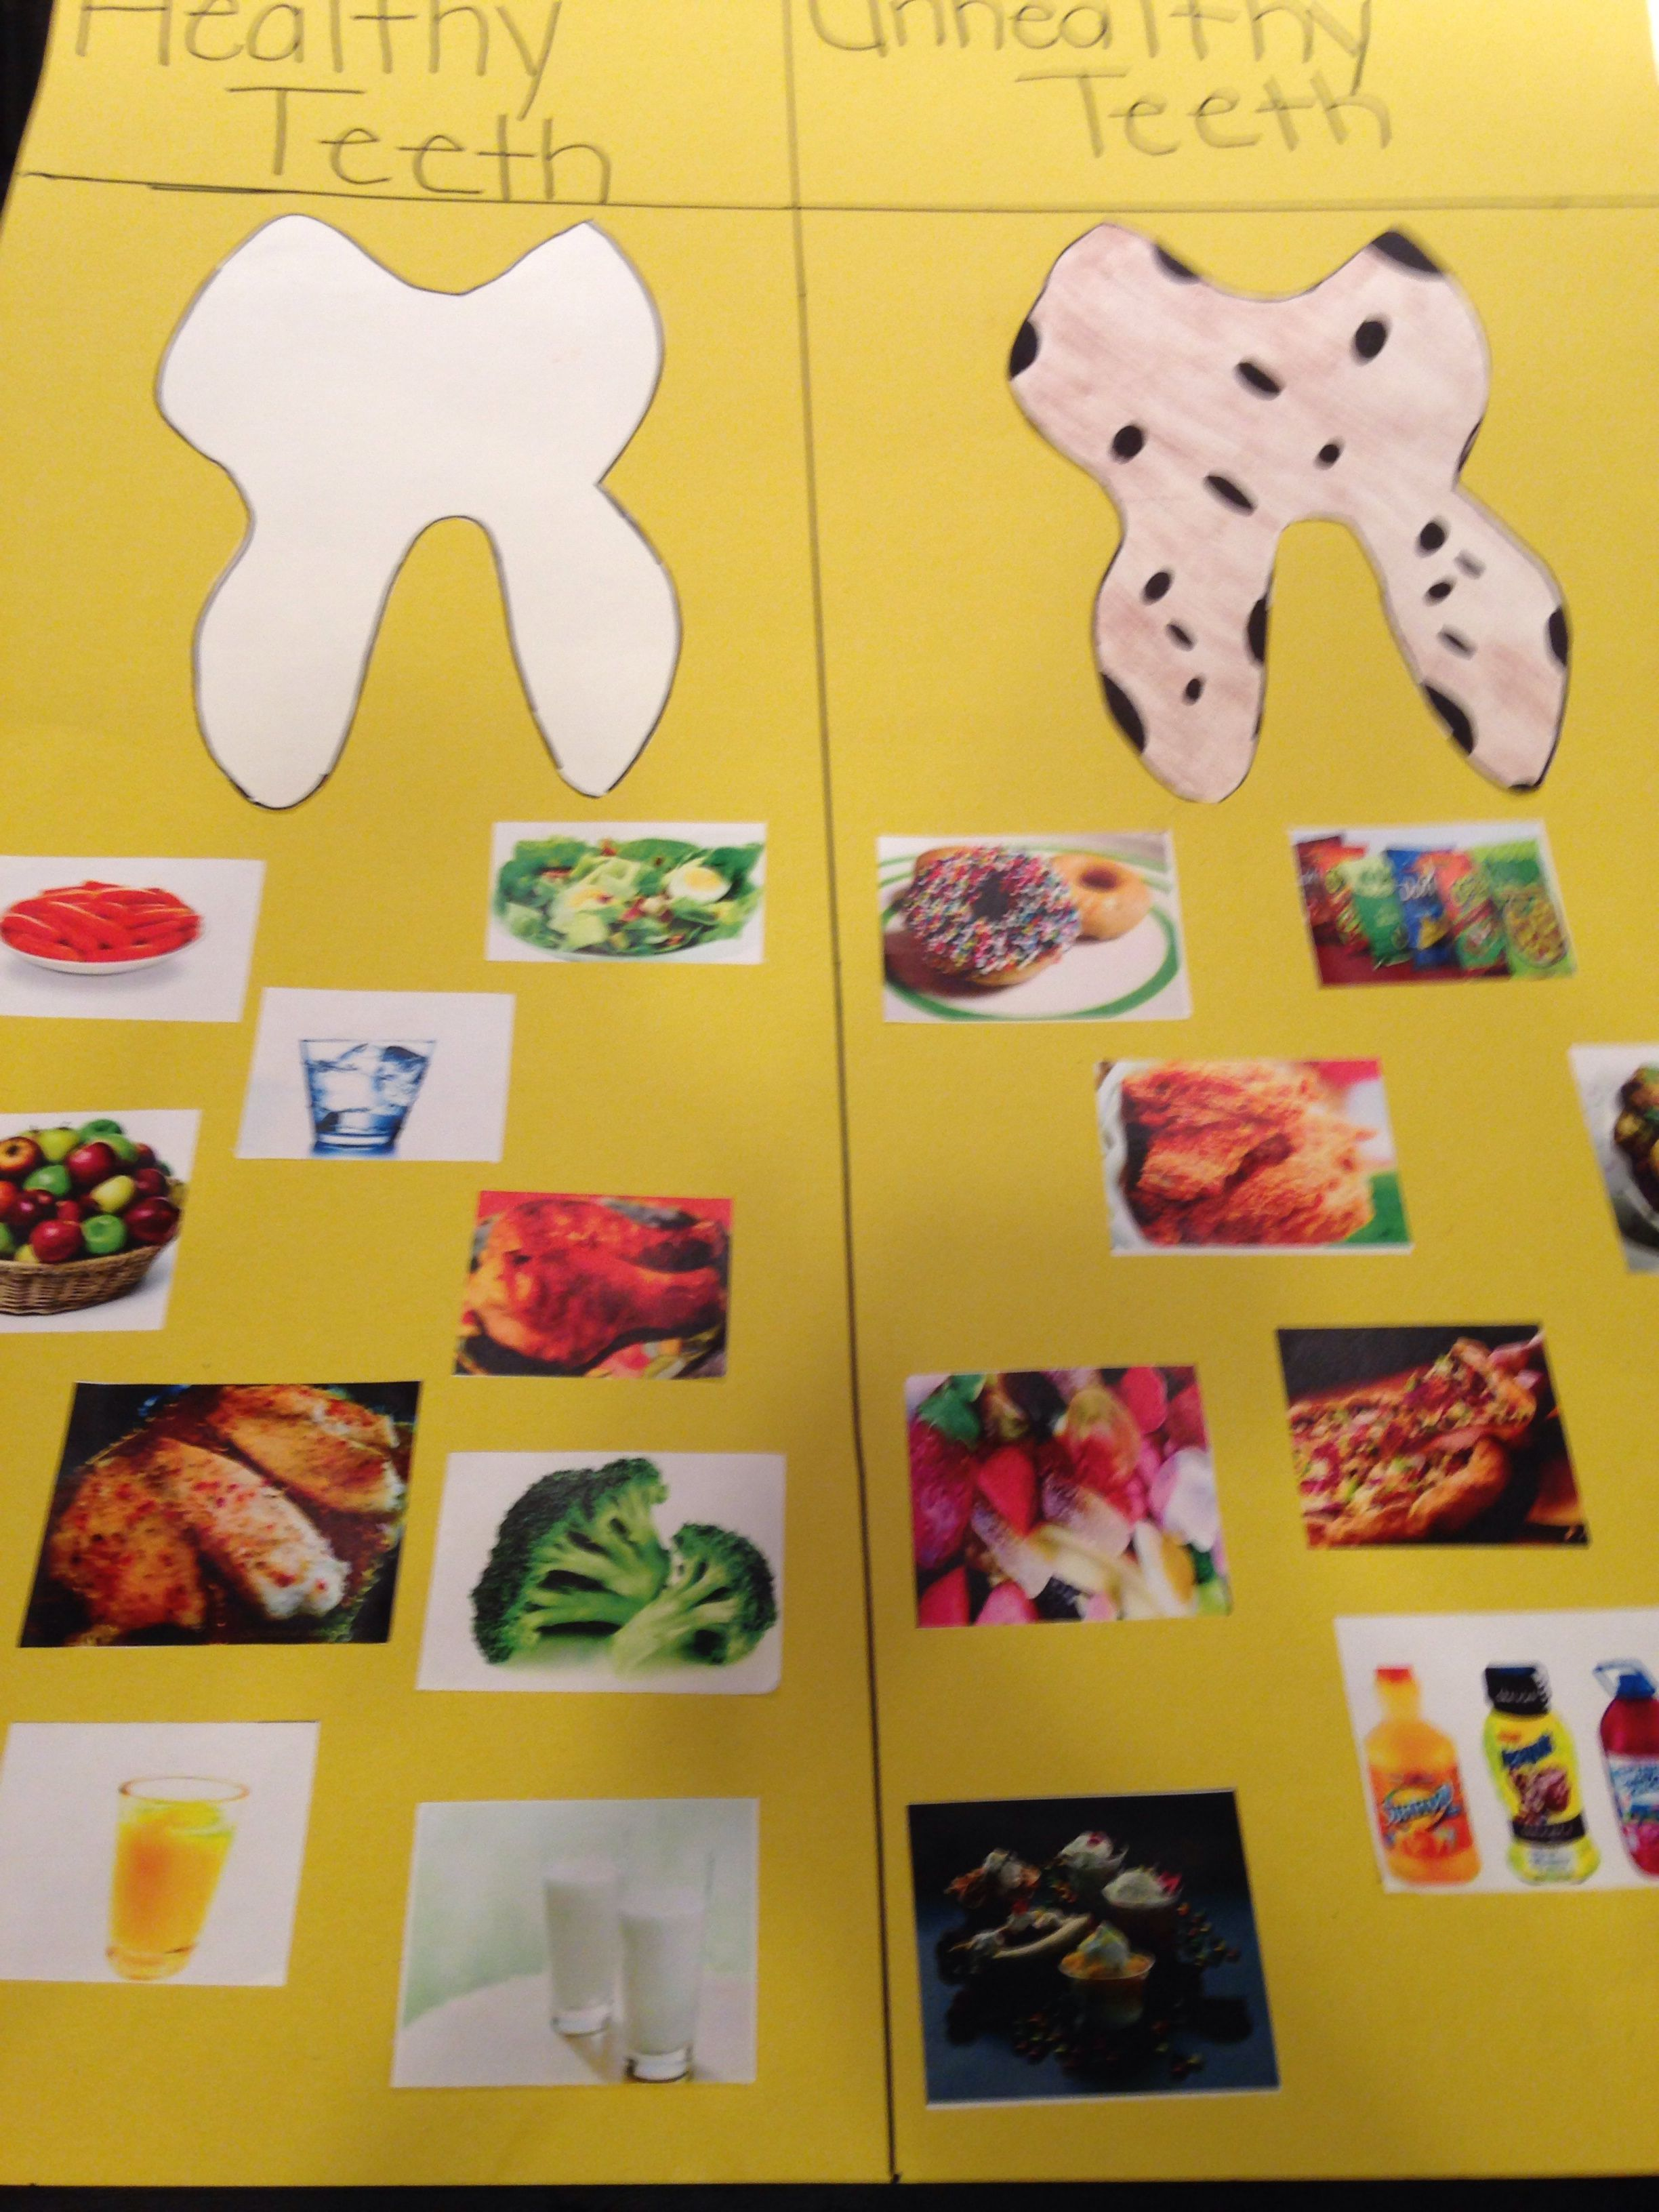 Healthy Teeth Versus Unhealthy Teeth I Made This Poster Board For Preschool Children You Can